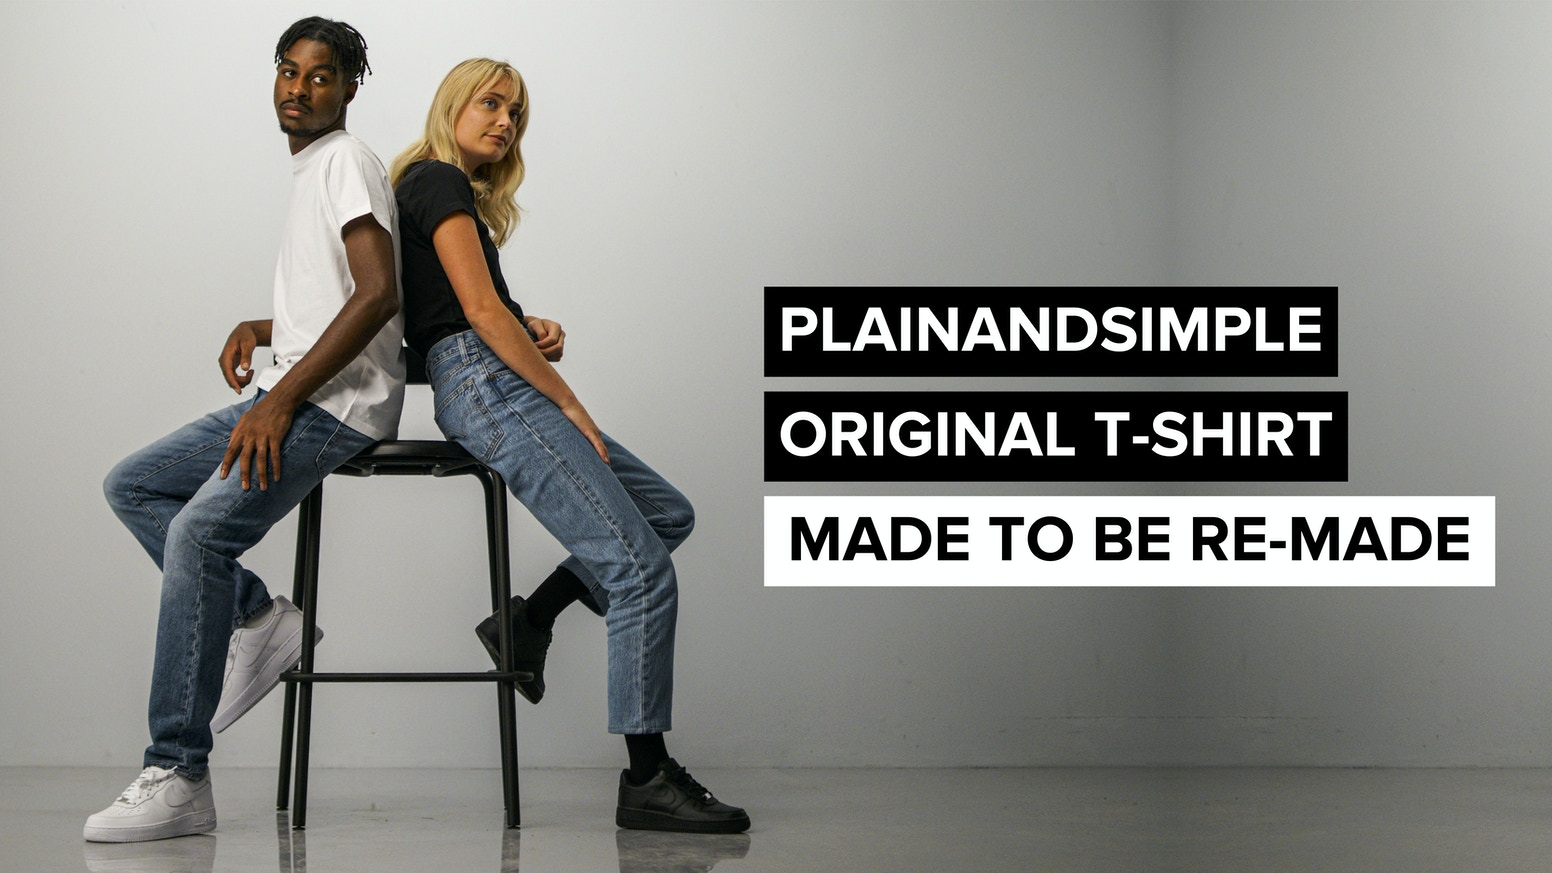 High-quality, designed to last, fully circular, 100% biodegradable and Made to be Re-Made. This is the future of fashion.